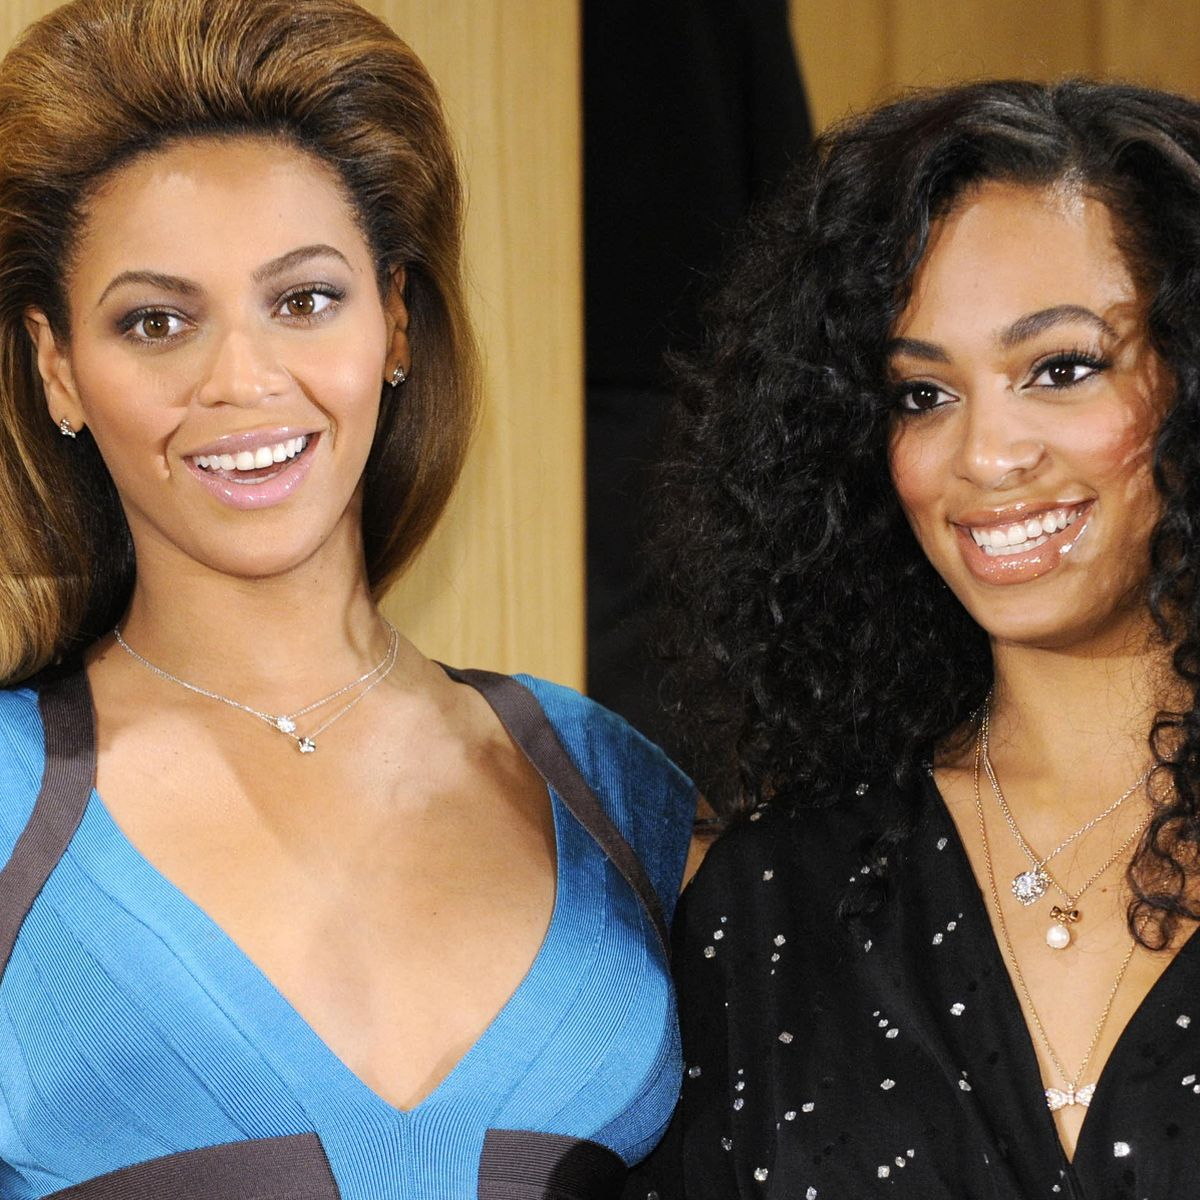 beyonce gave birth to solange as a teen